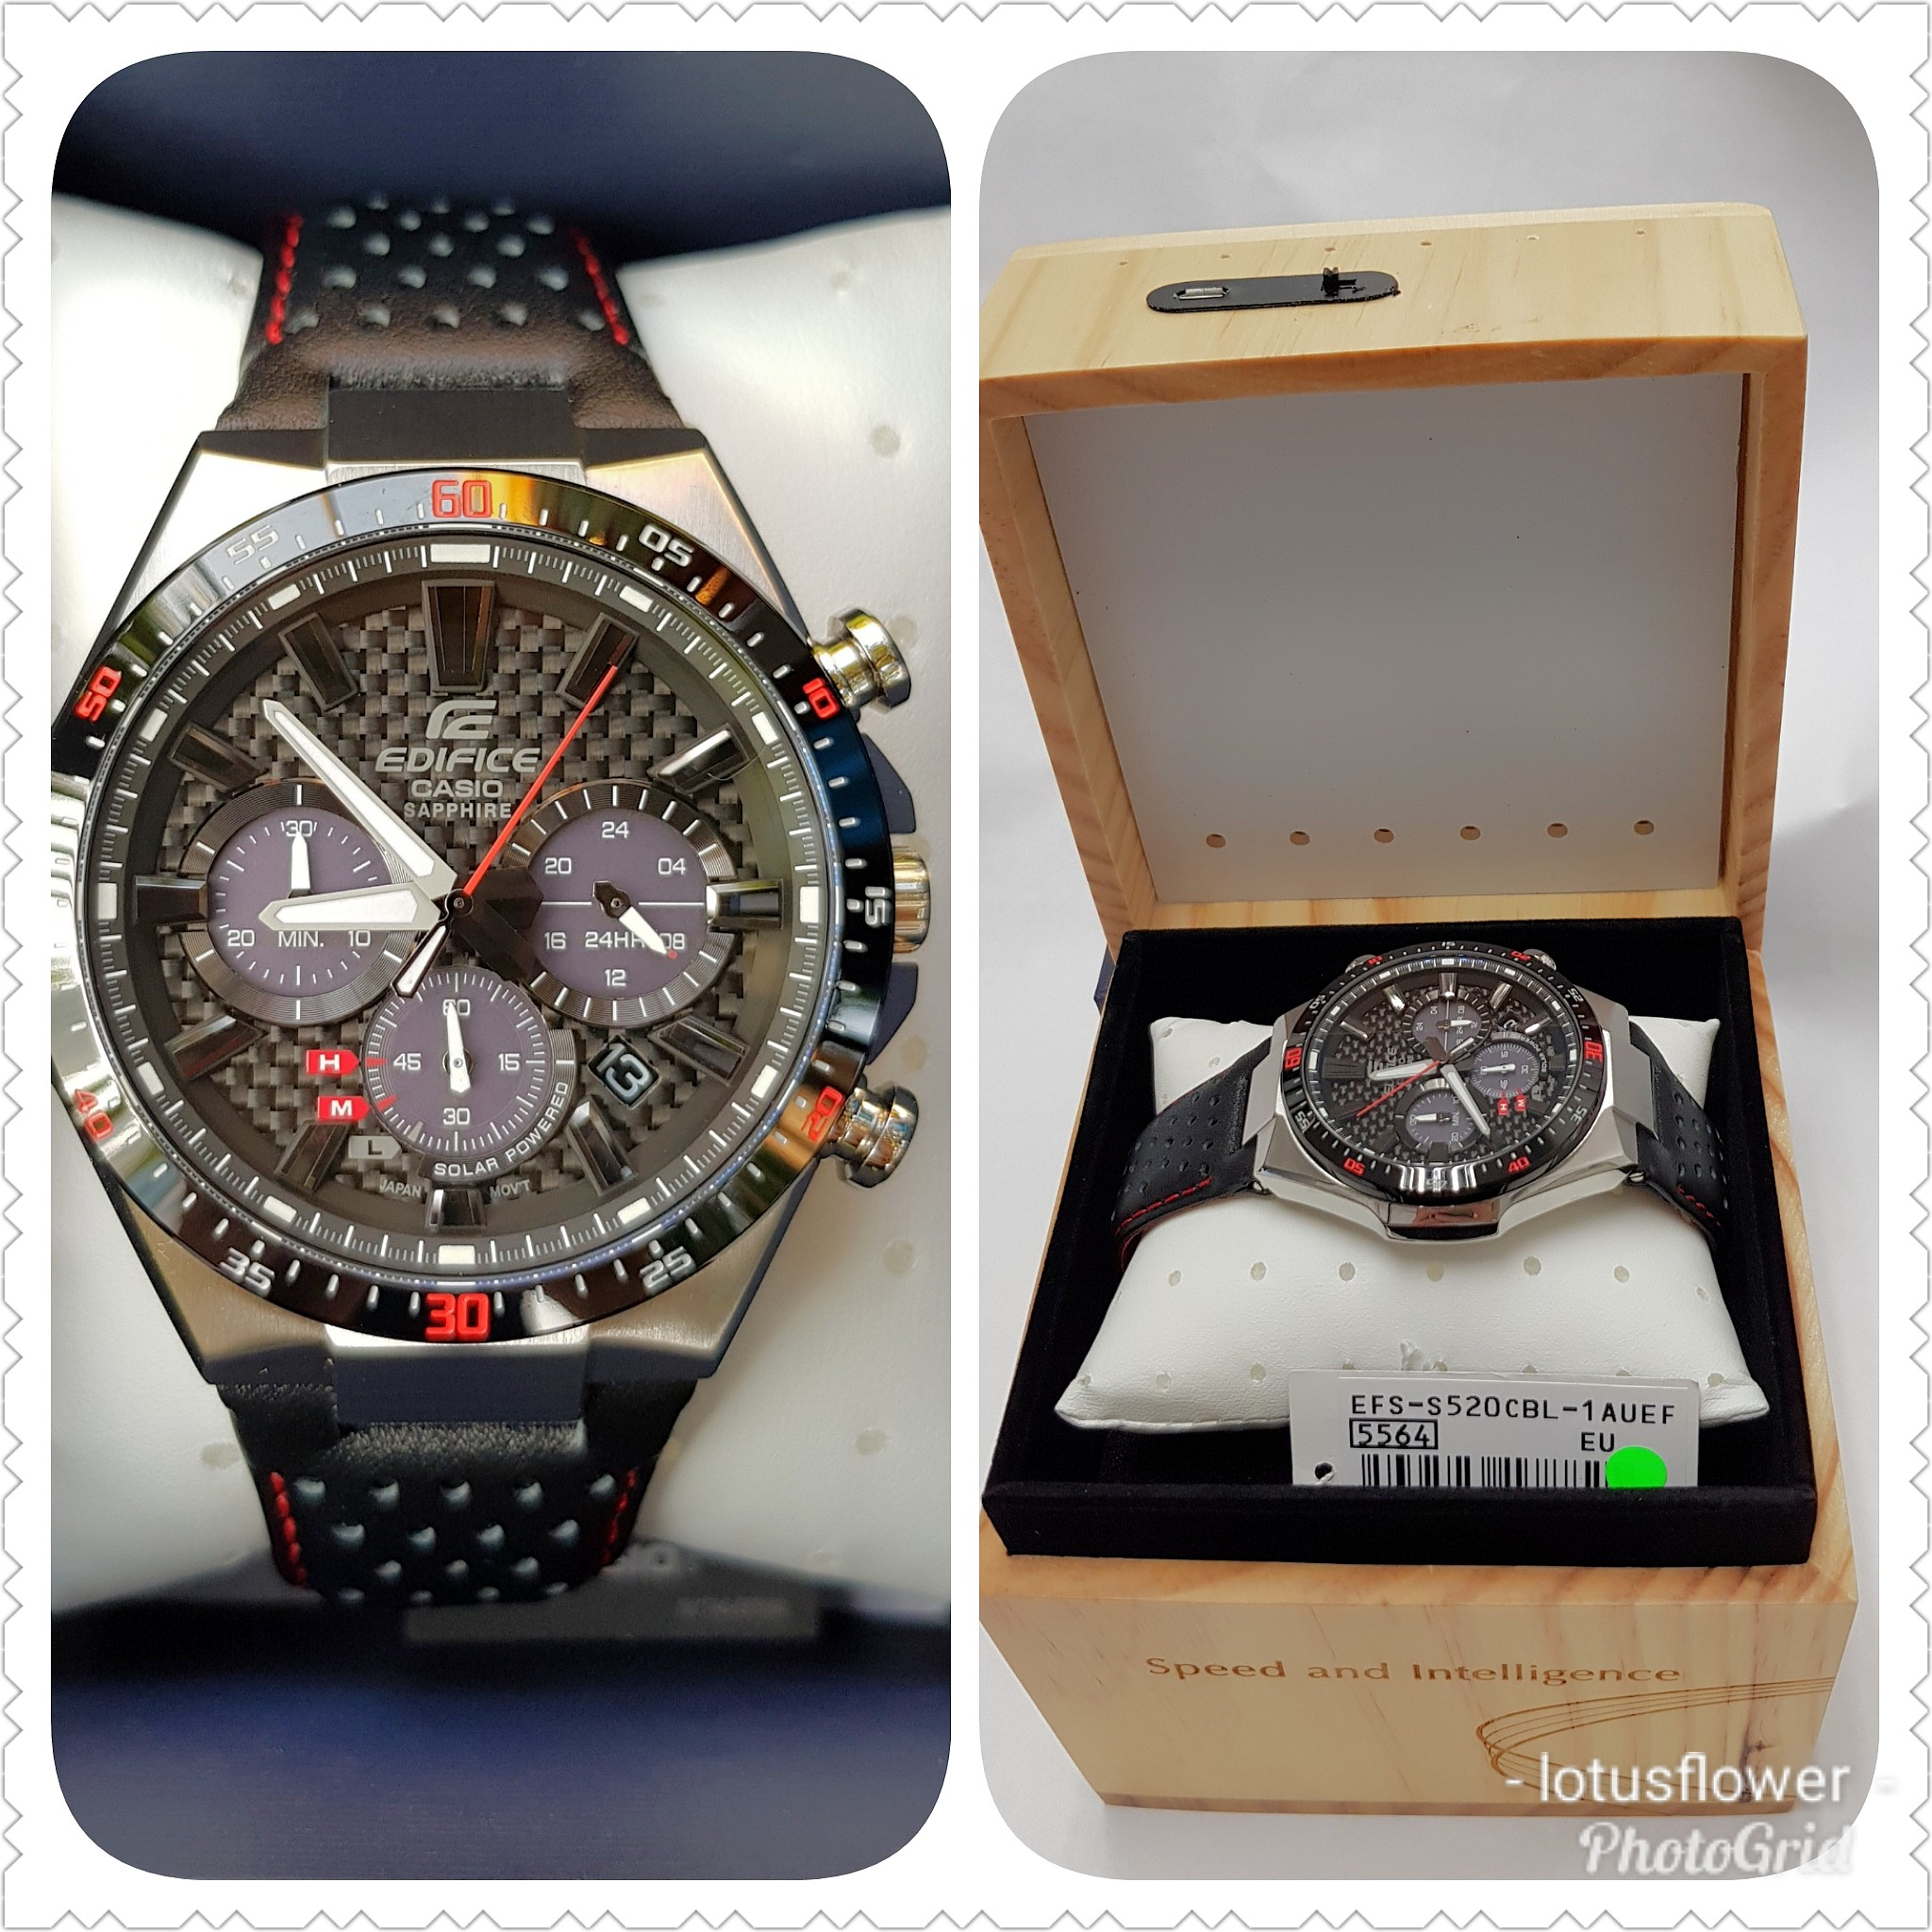 89e7853290fb Guarranteed 100% Brand New Authentic Casio Edifice Sapphire crystal Solar  watch or Full refund. FREE limited Edition Solar Re-Charging Station